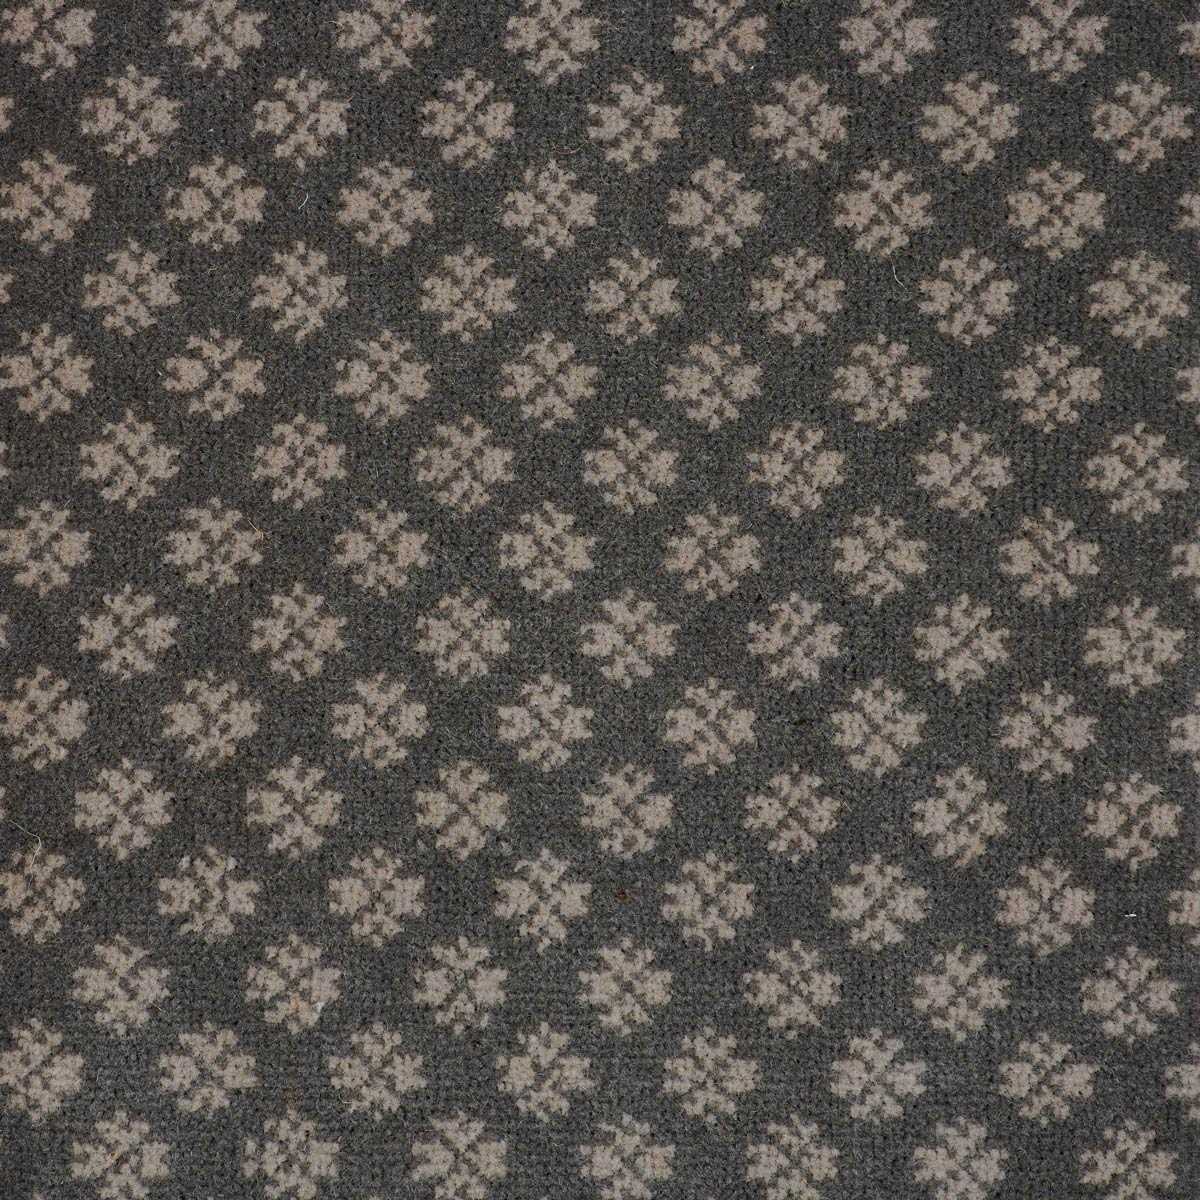 wonderland-dreams_wool_broadloom_patterson-flynn-martin_pfm